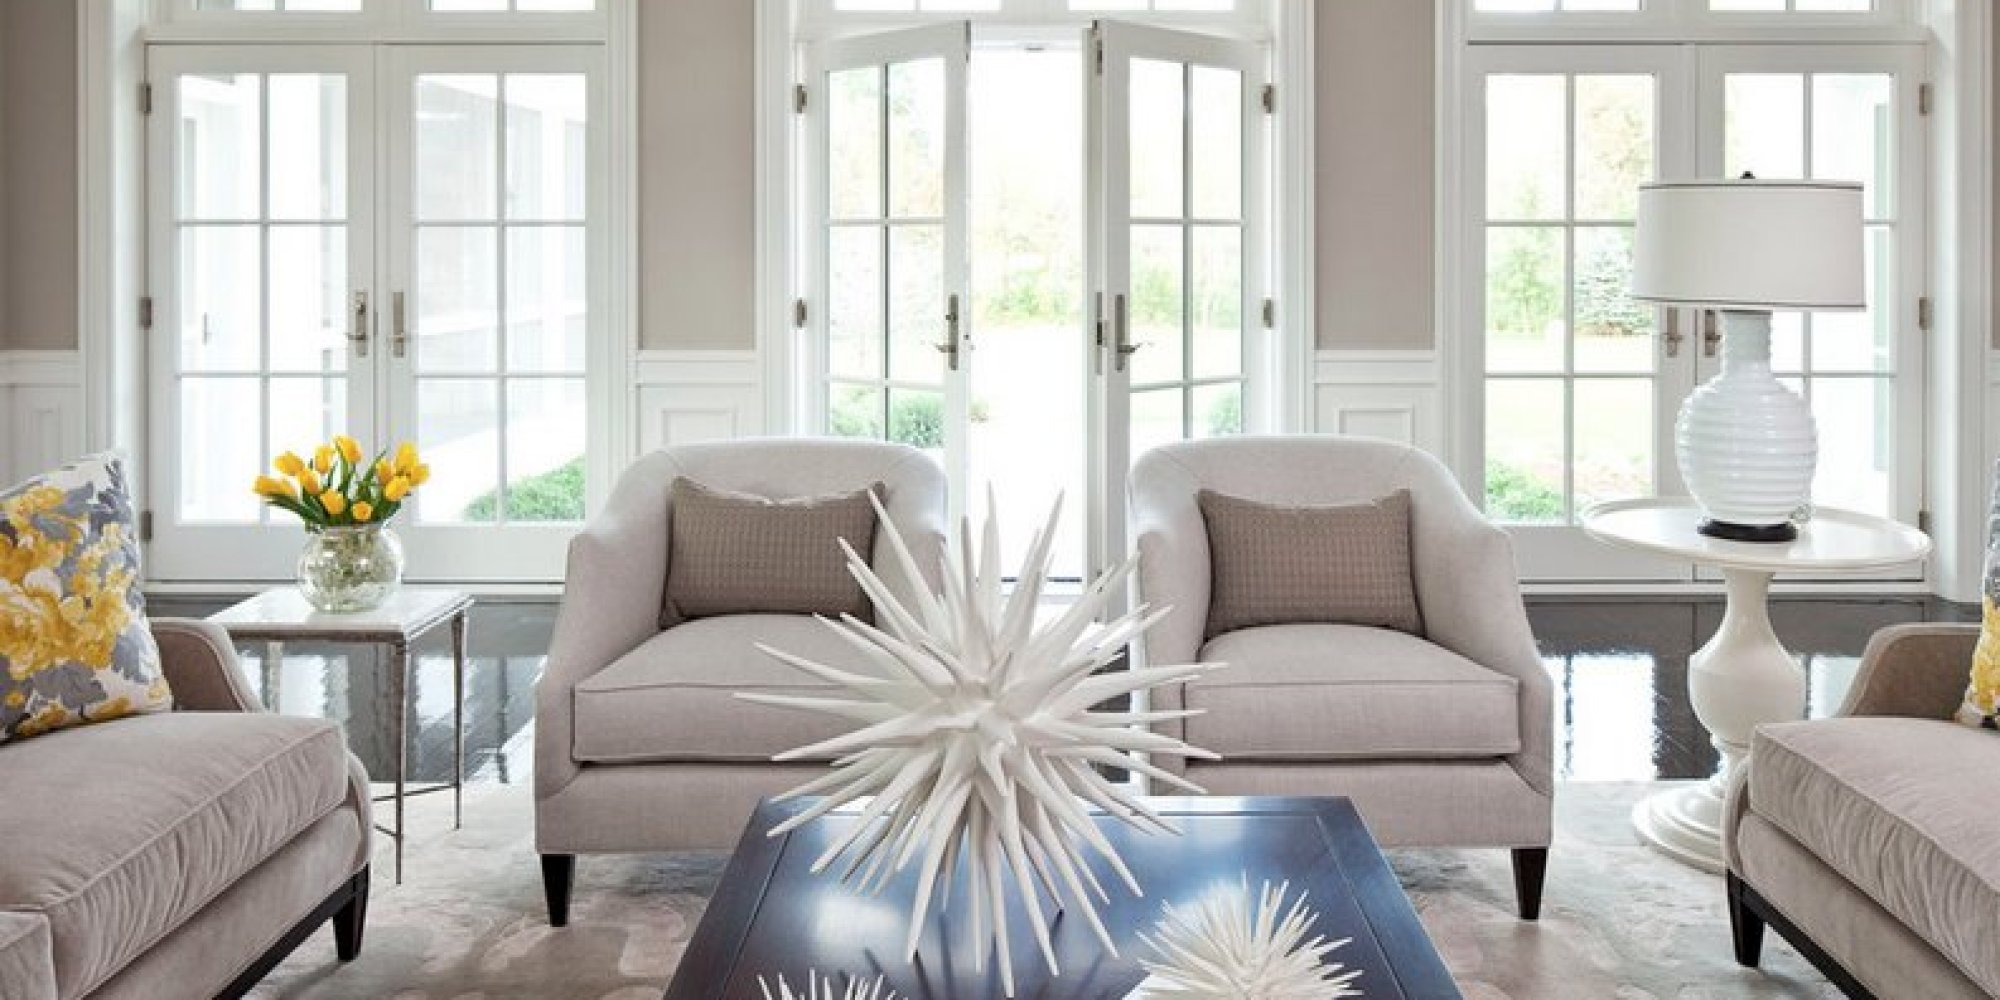 Paint Colors For A Living Room The 8 Best Neutral Paint Colors Thatll Work In Any Home No